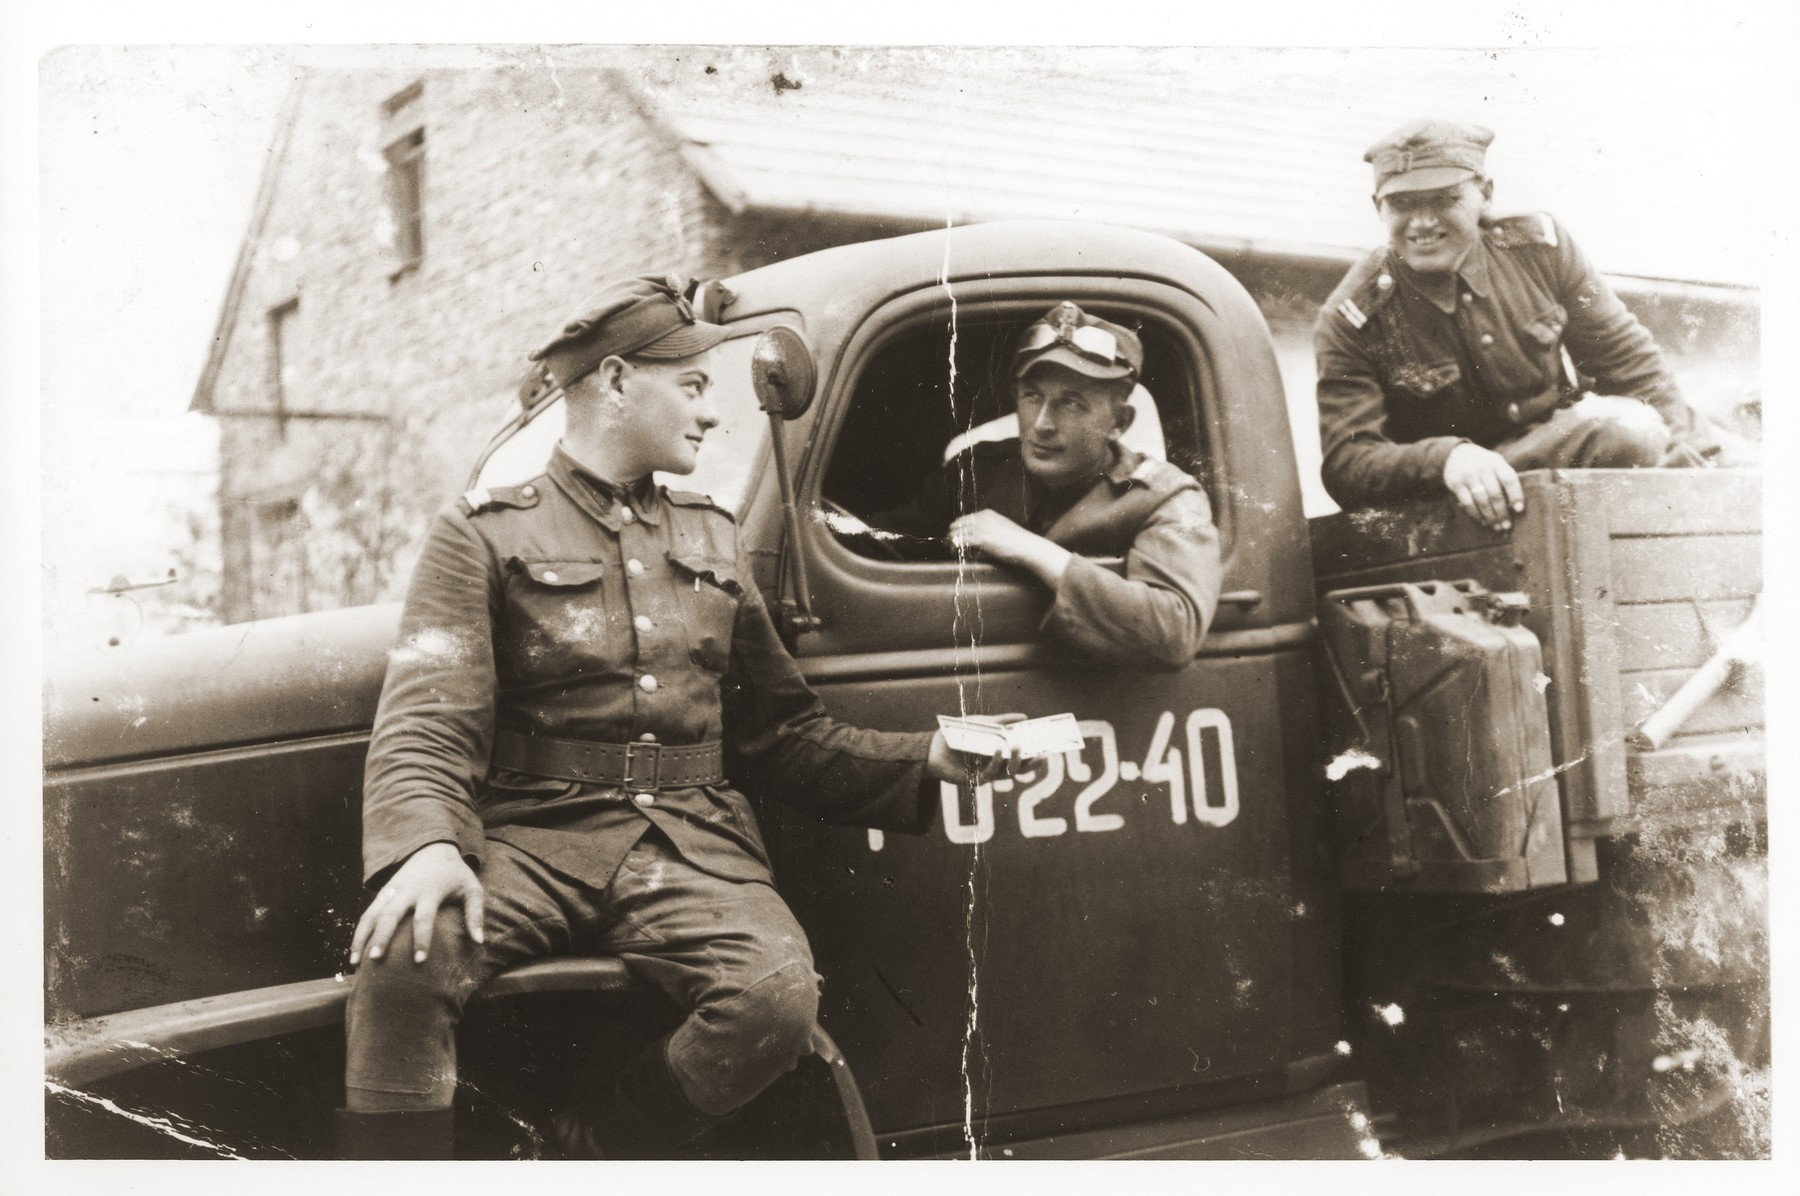 Oskar Littman (left) poses with two members of his Polish army unit in front of their truck.